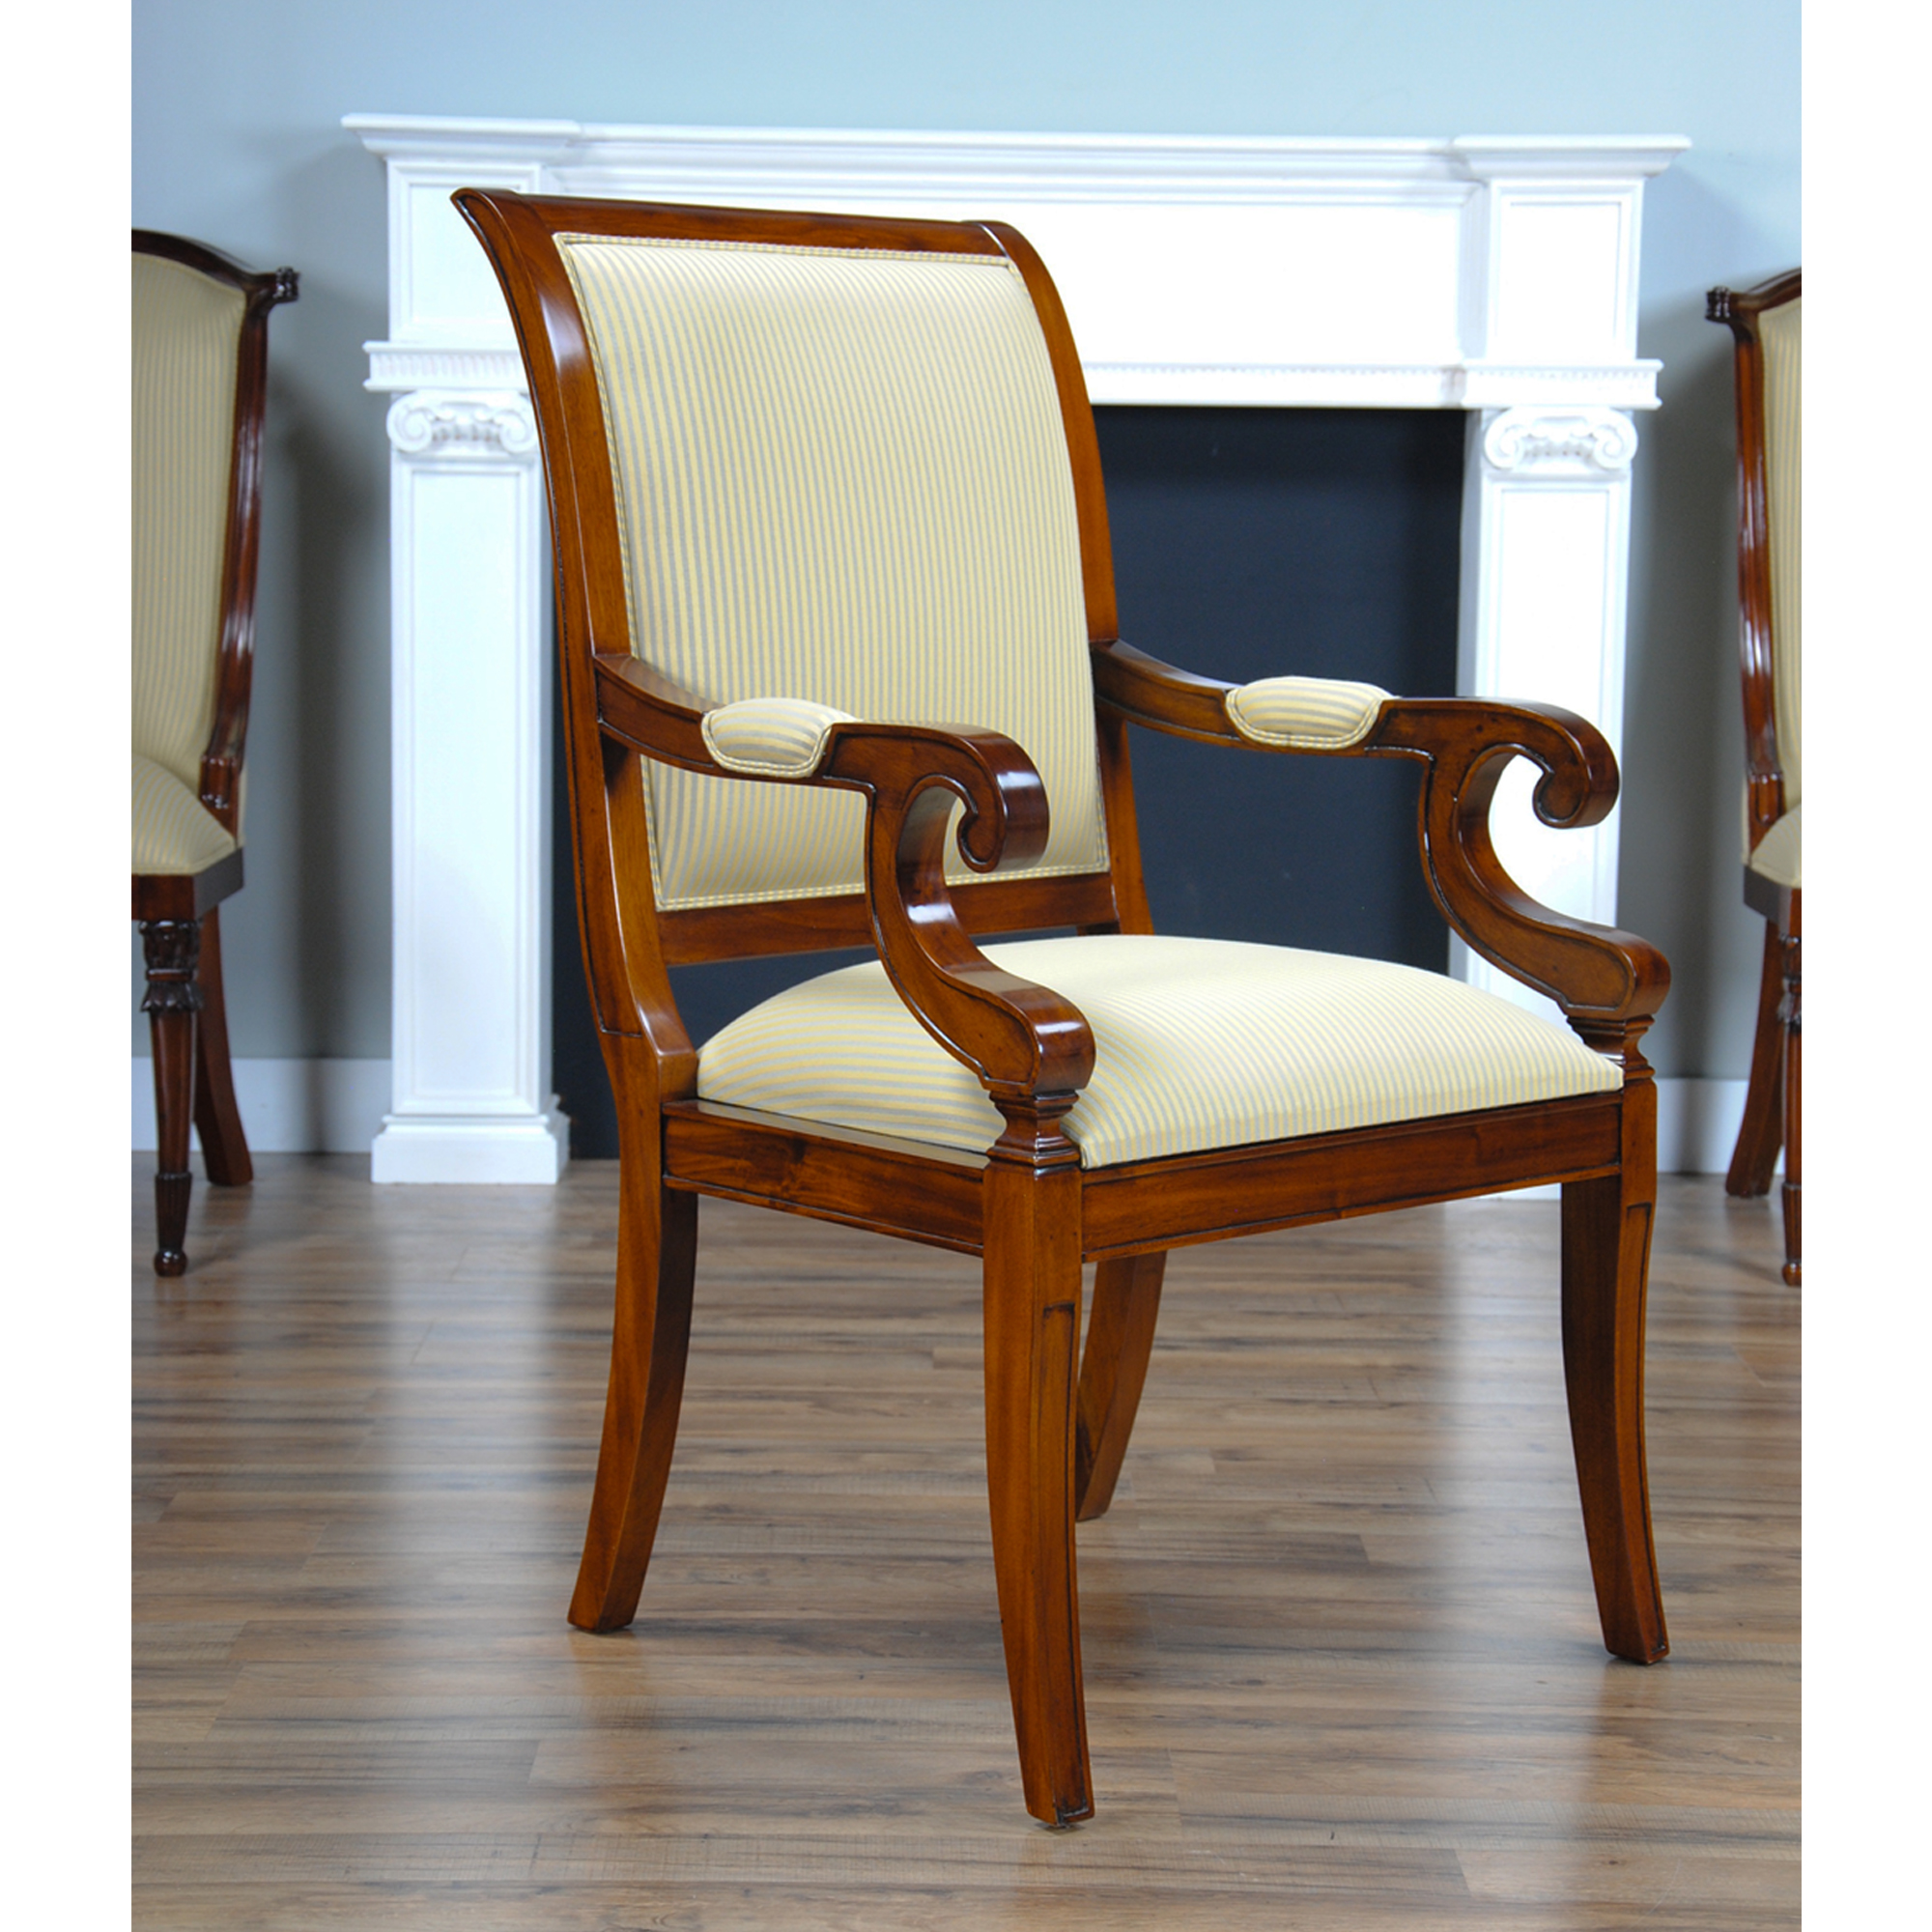 Regency Upholstered Dining Chair, Niagara Furniture, solid mahogany